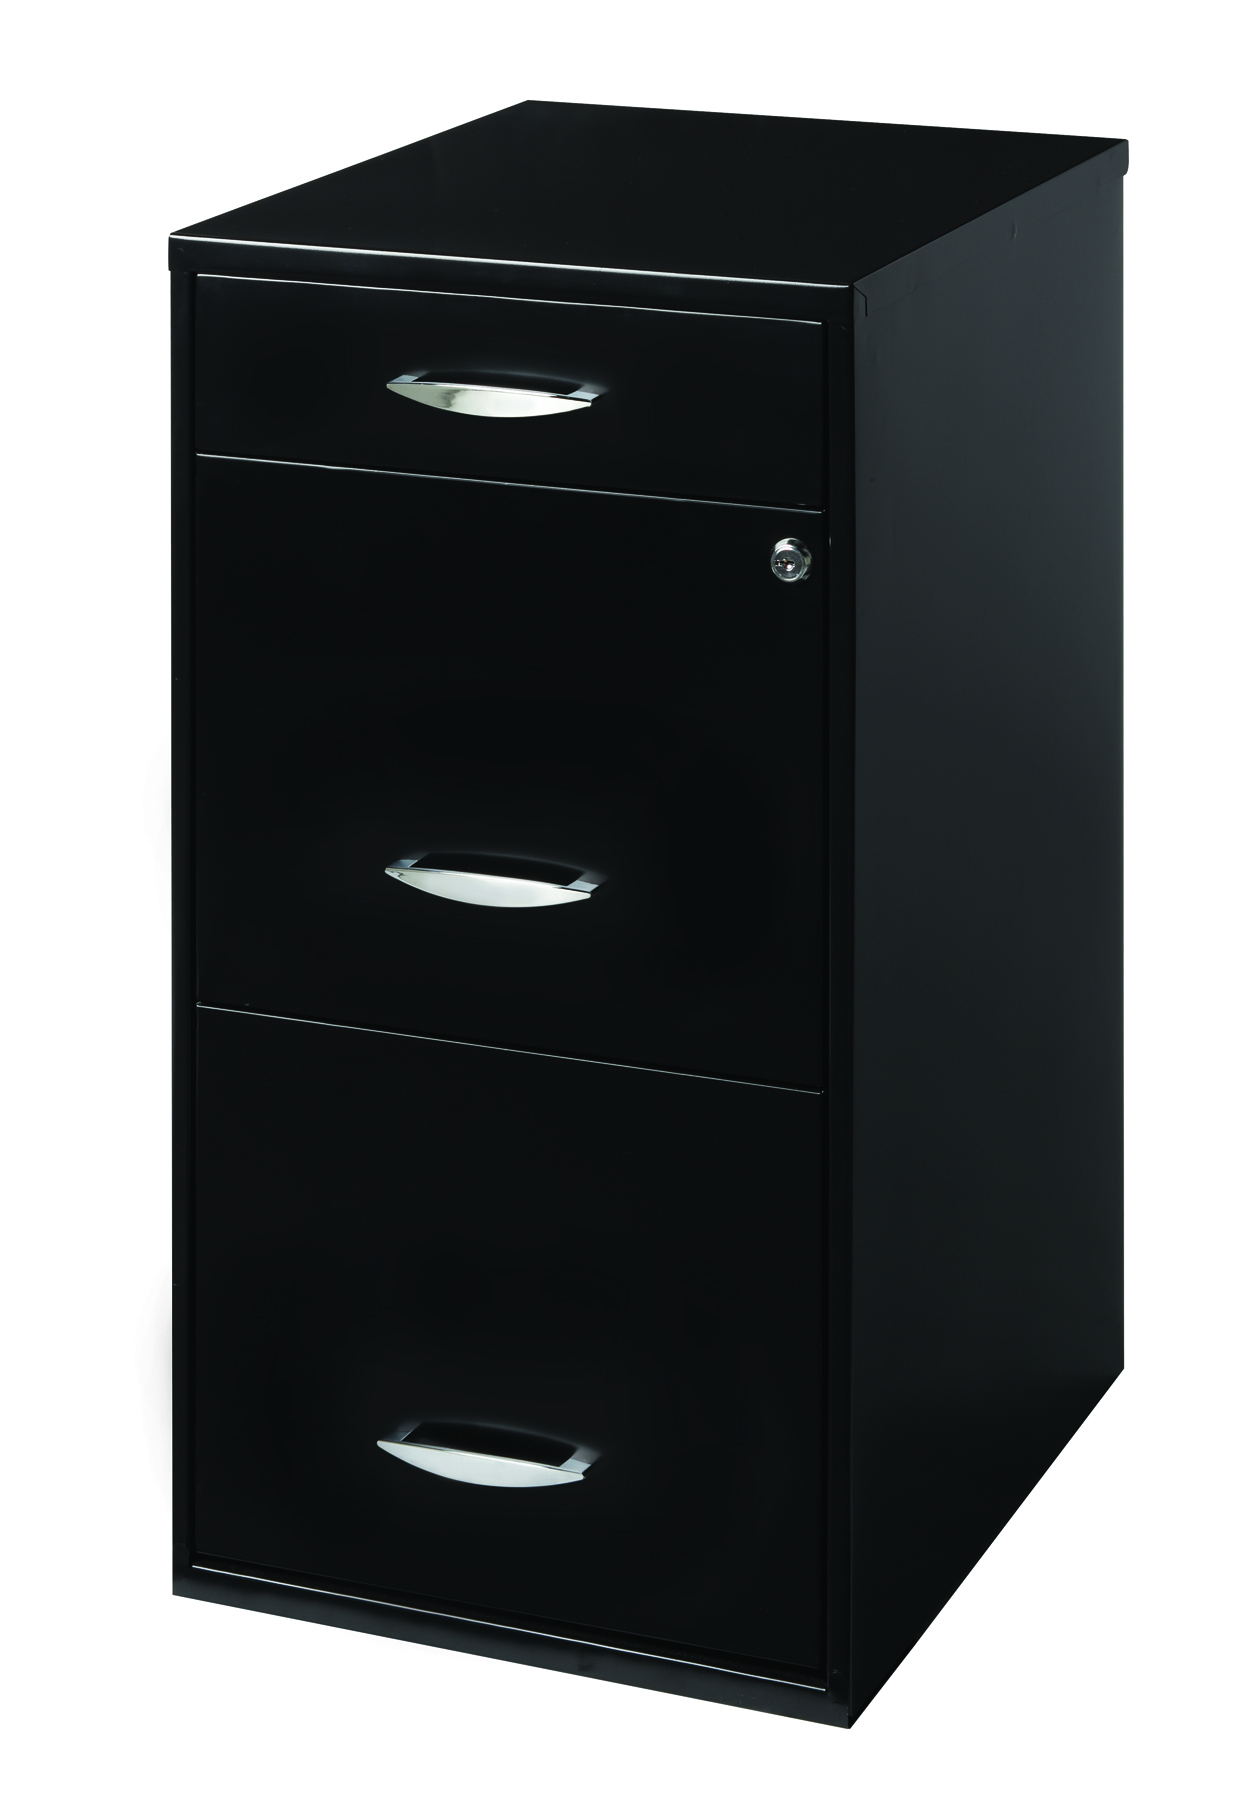 Filing Cabinet 3 Drawer With Pencil Tray And Lock, Black